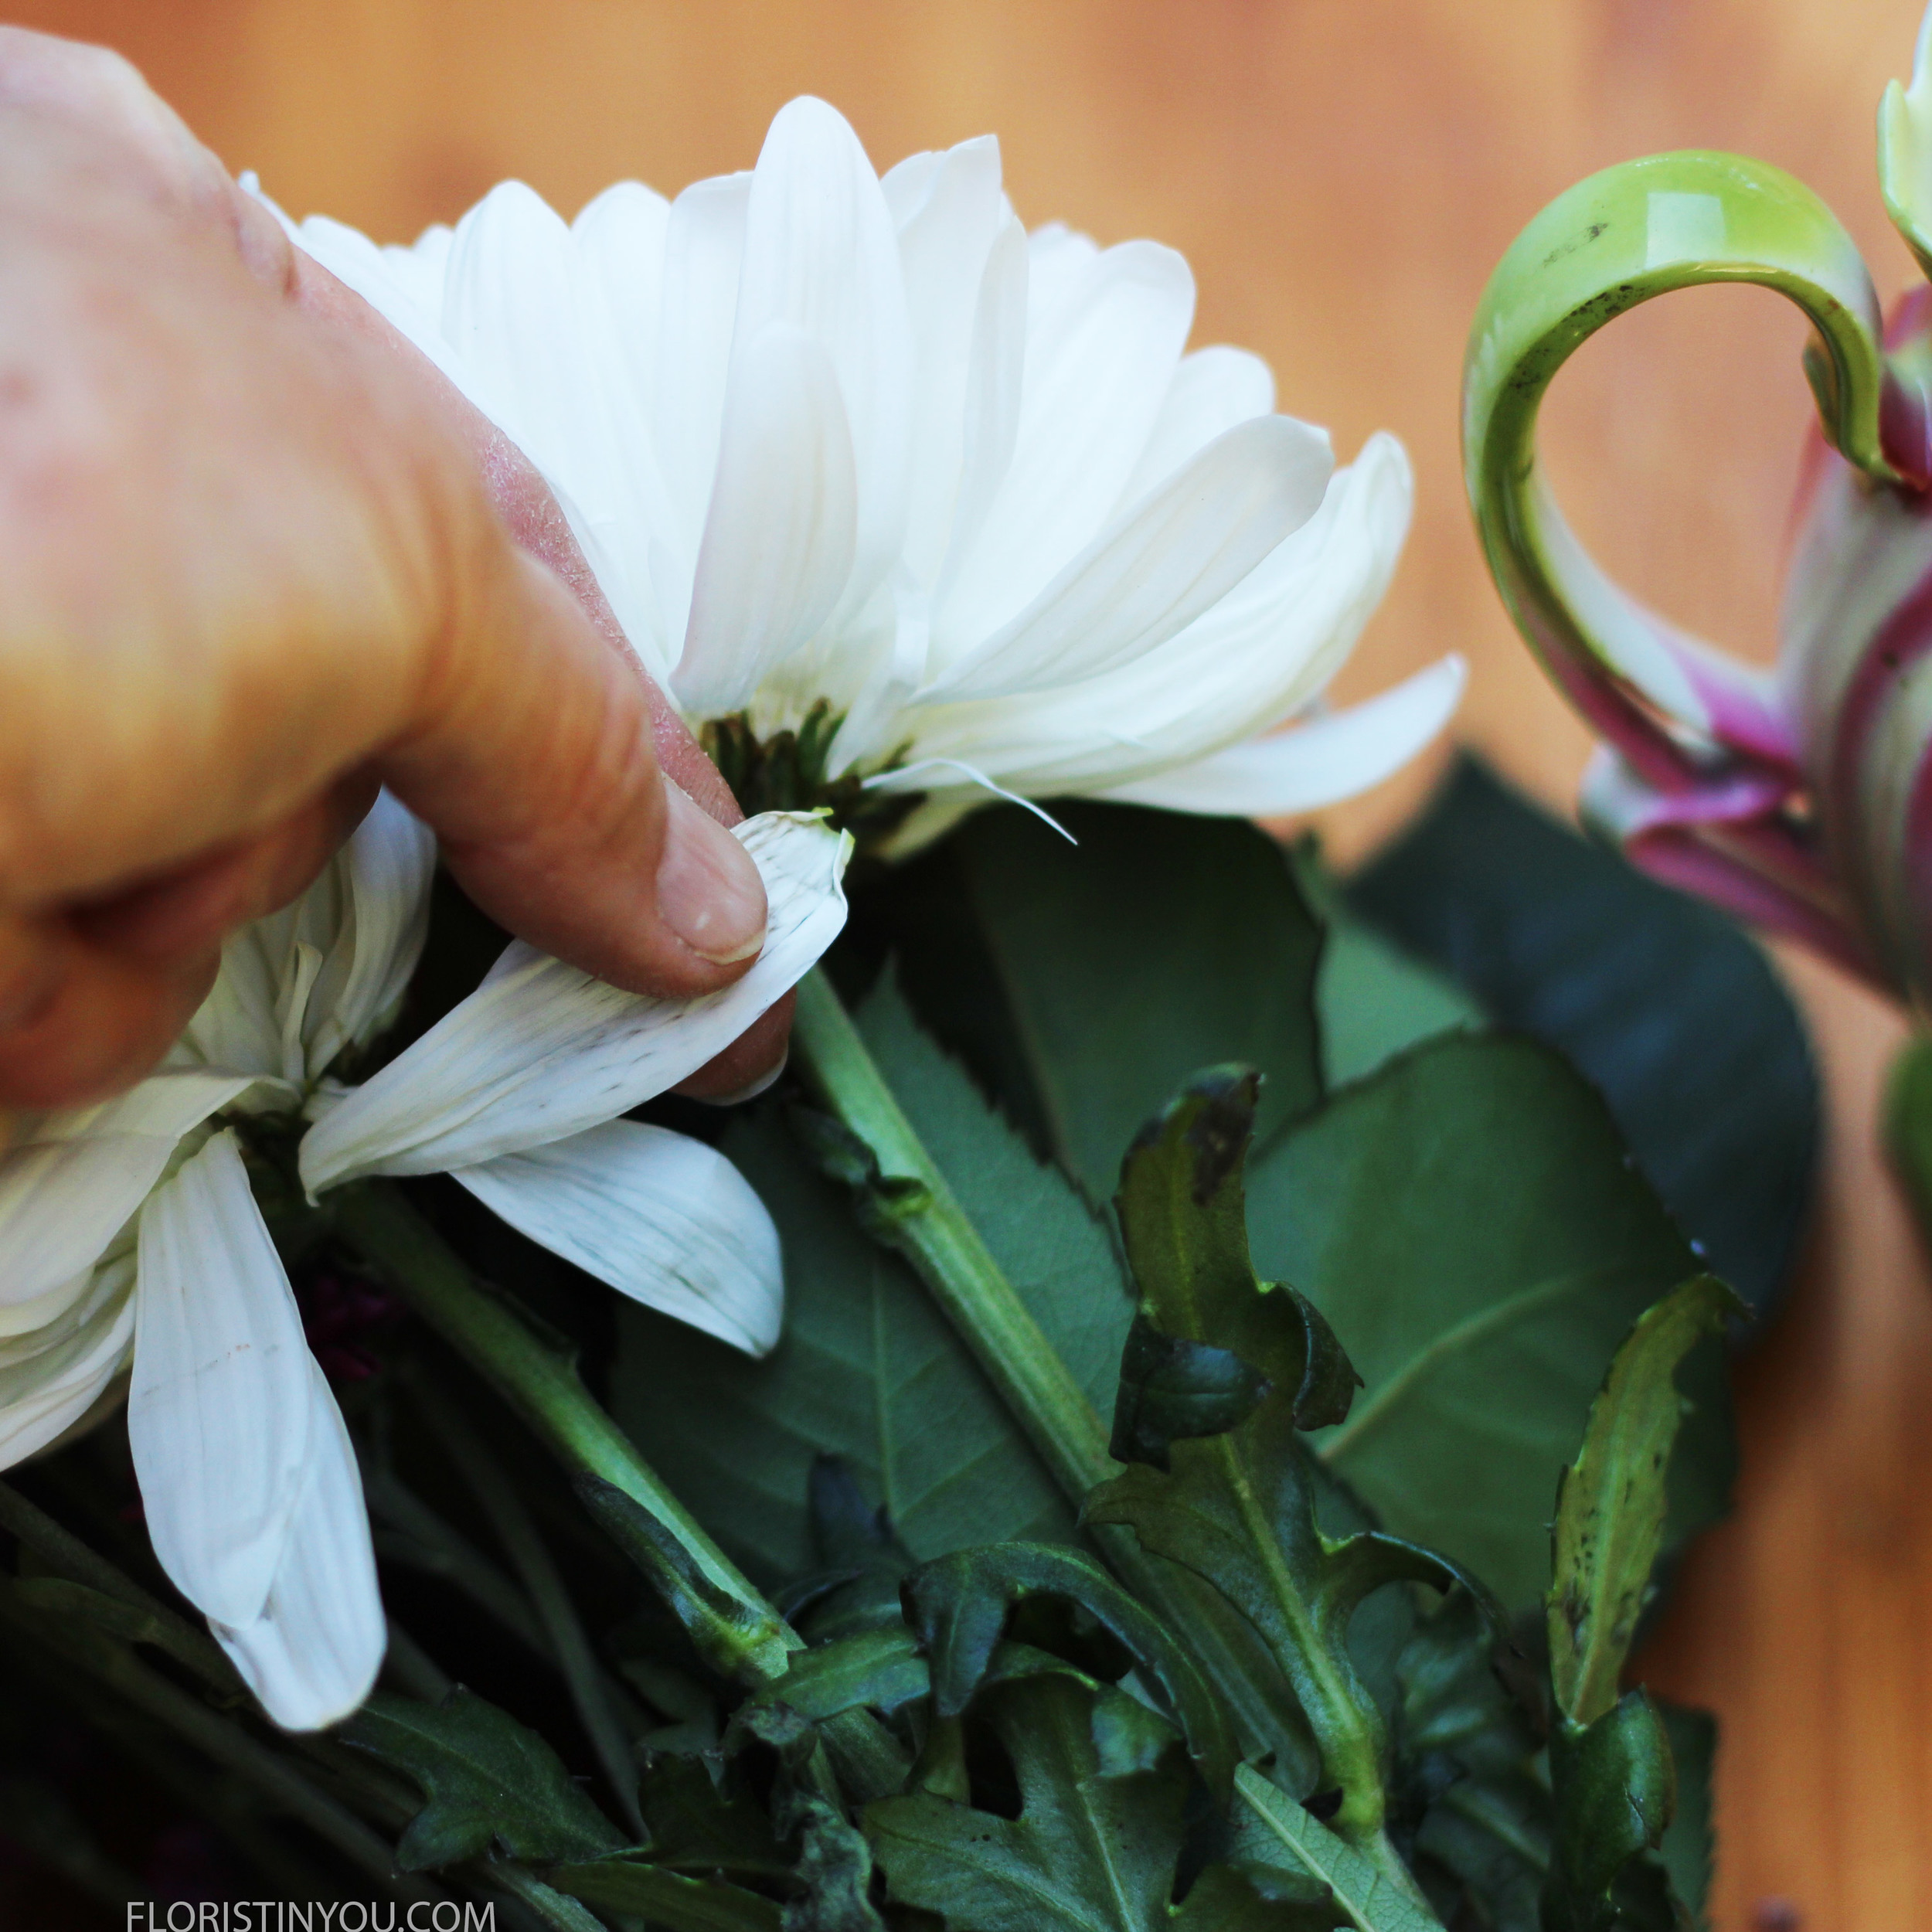 Carefully pull off any straggling petals.